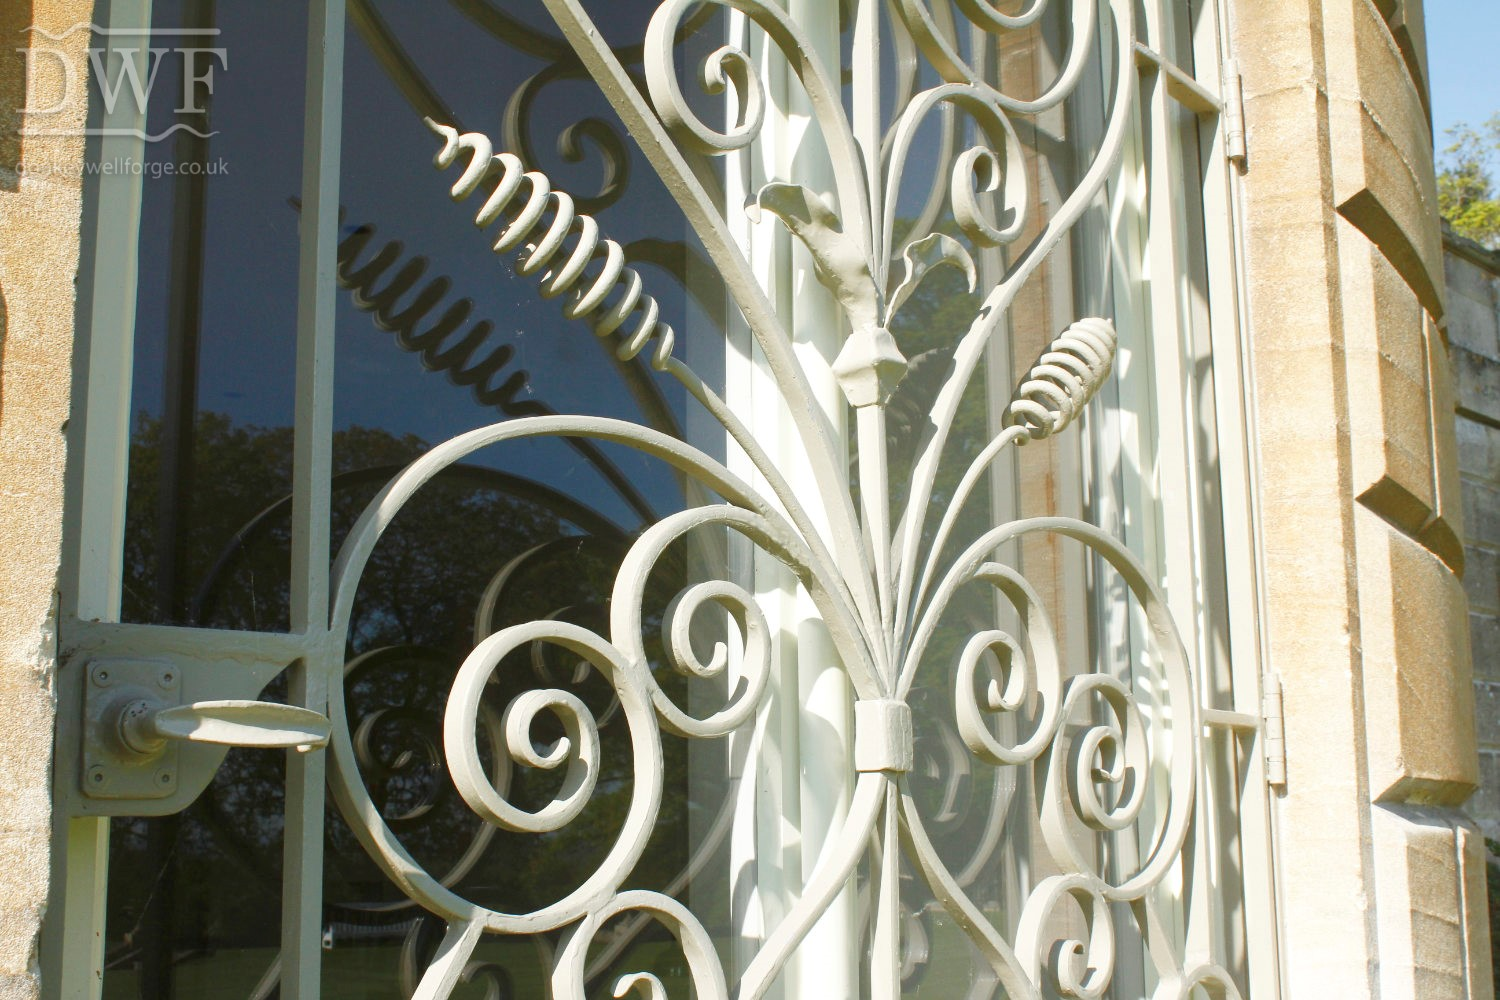 window-grilles-ironwork-ornamental-forged-detail-donkeywell-forge